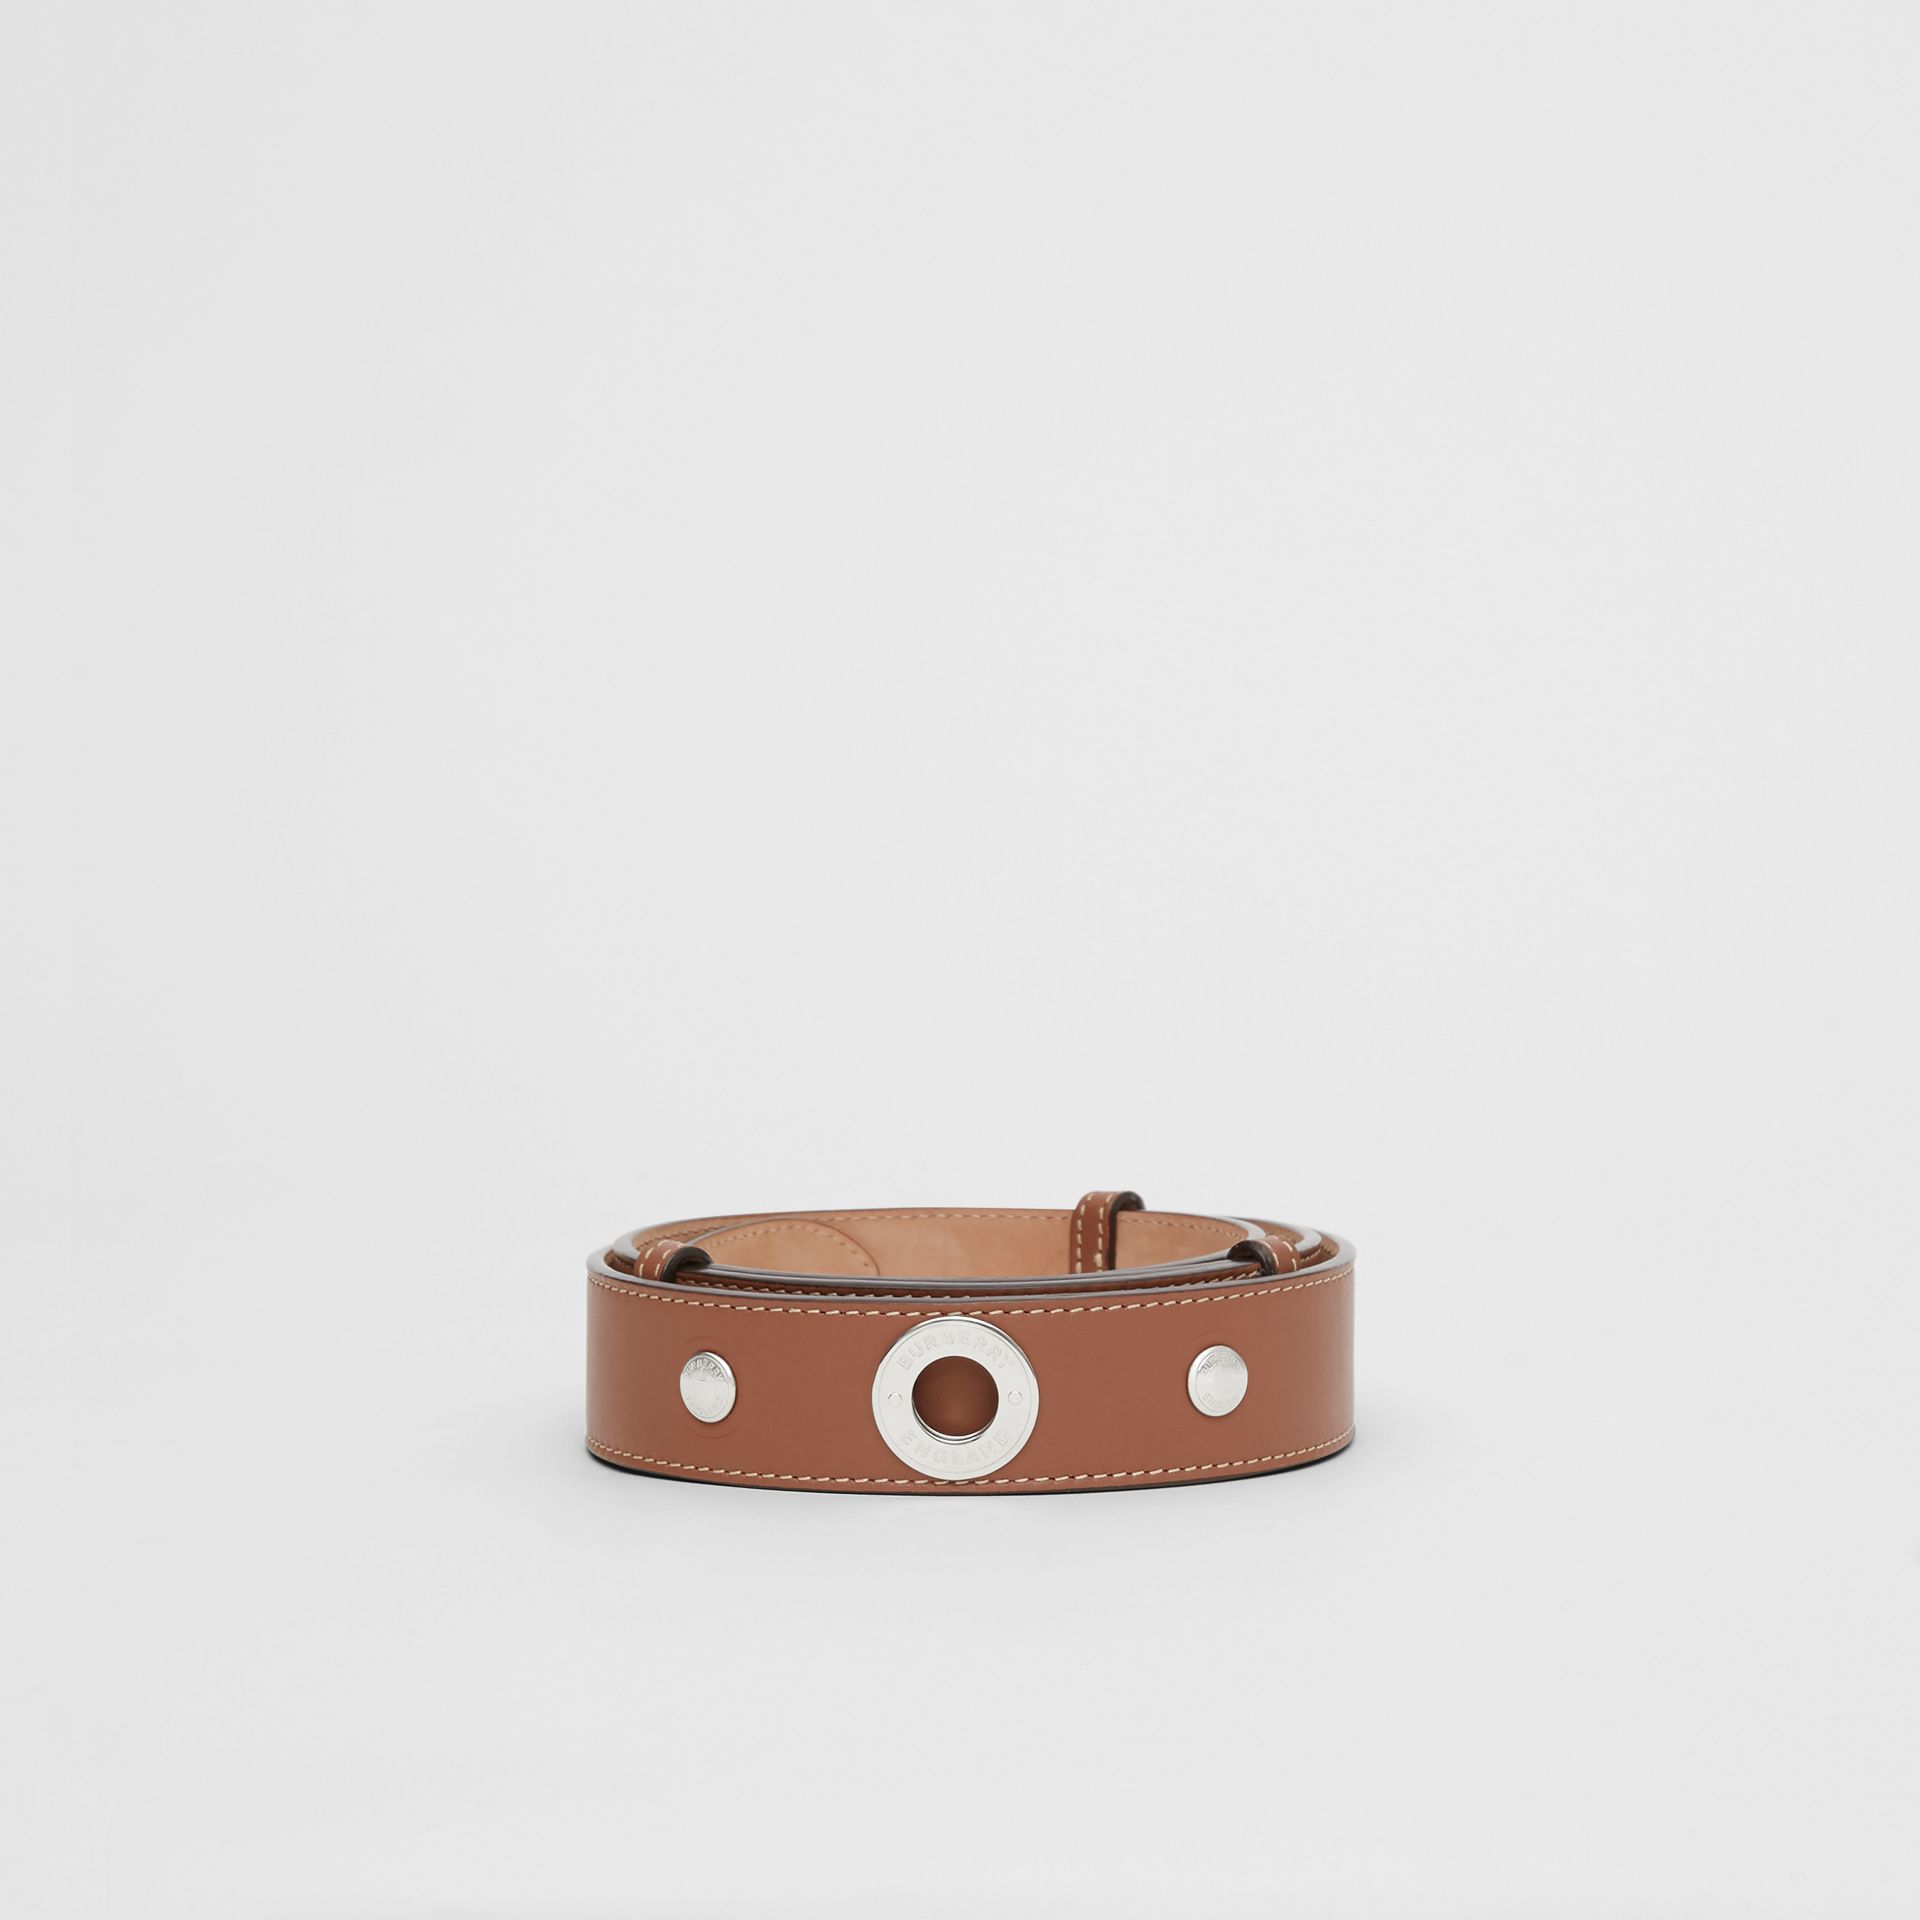 Triple Stud Leather Belt in Malt Brown - Women | Burberry Australia - gallery image 3